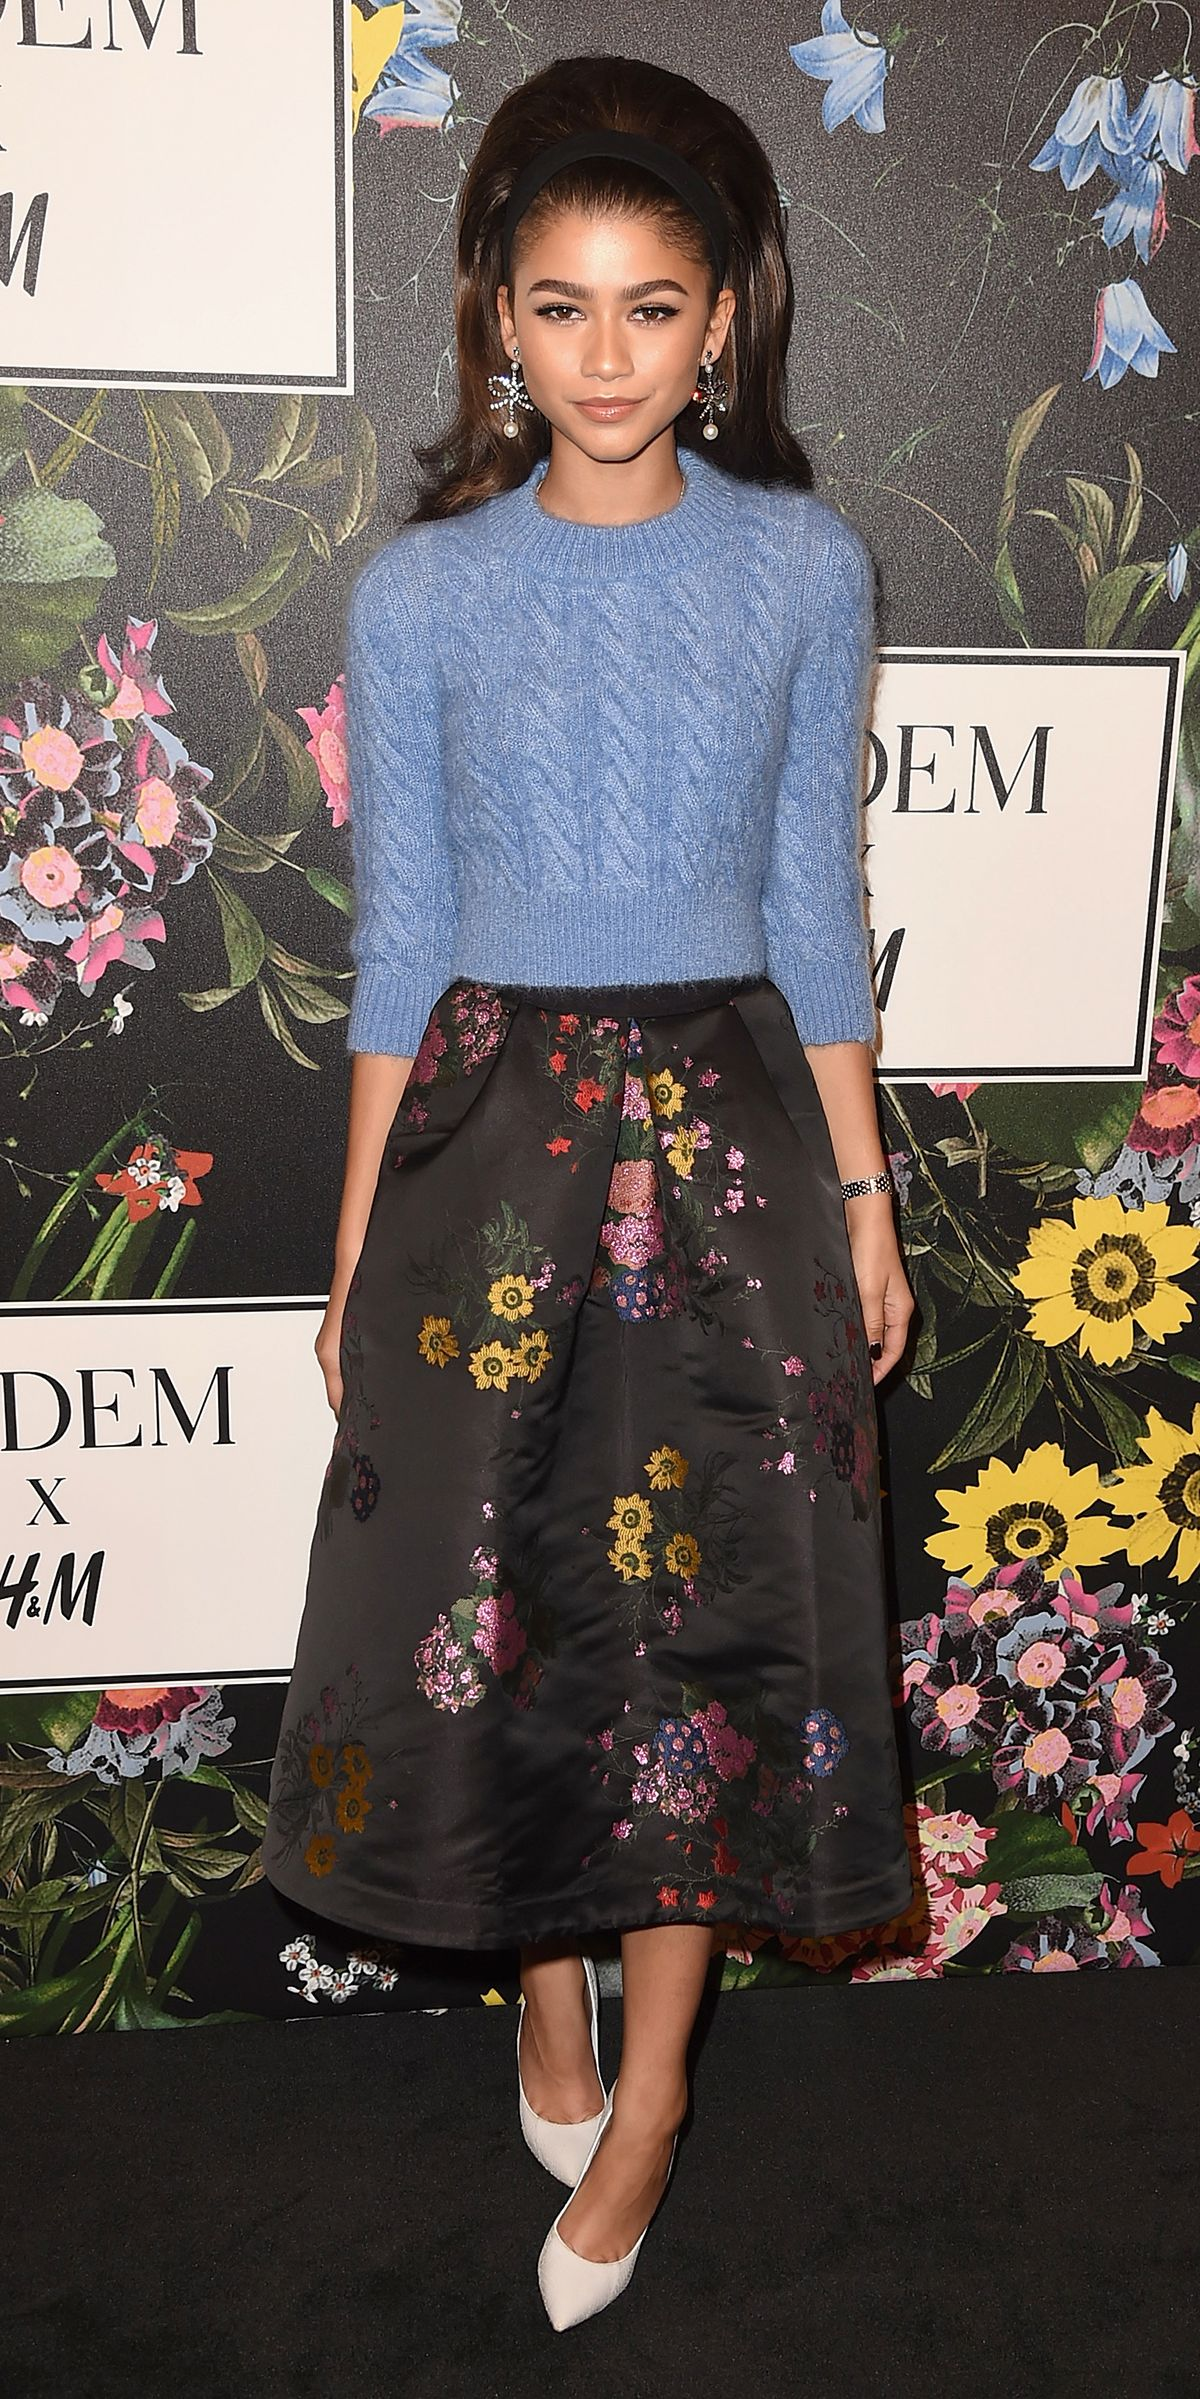 The Erdem x H&M Runway Show Descended Upon Hollywood | Who